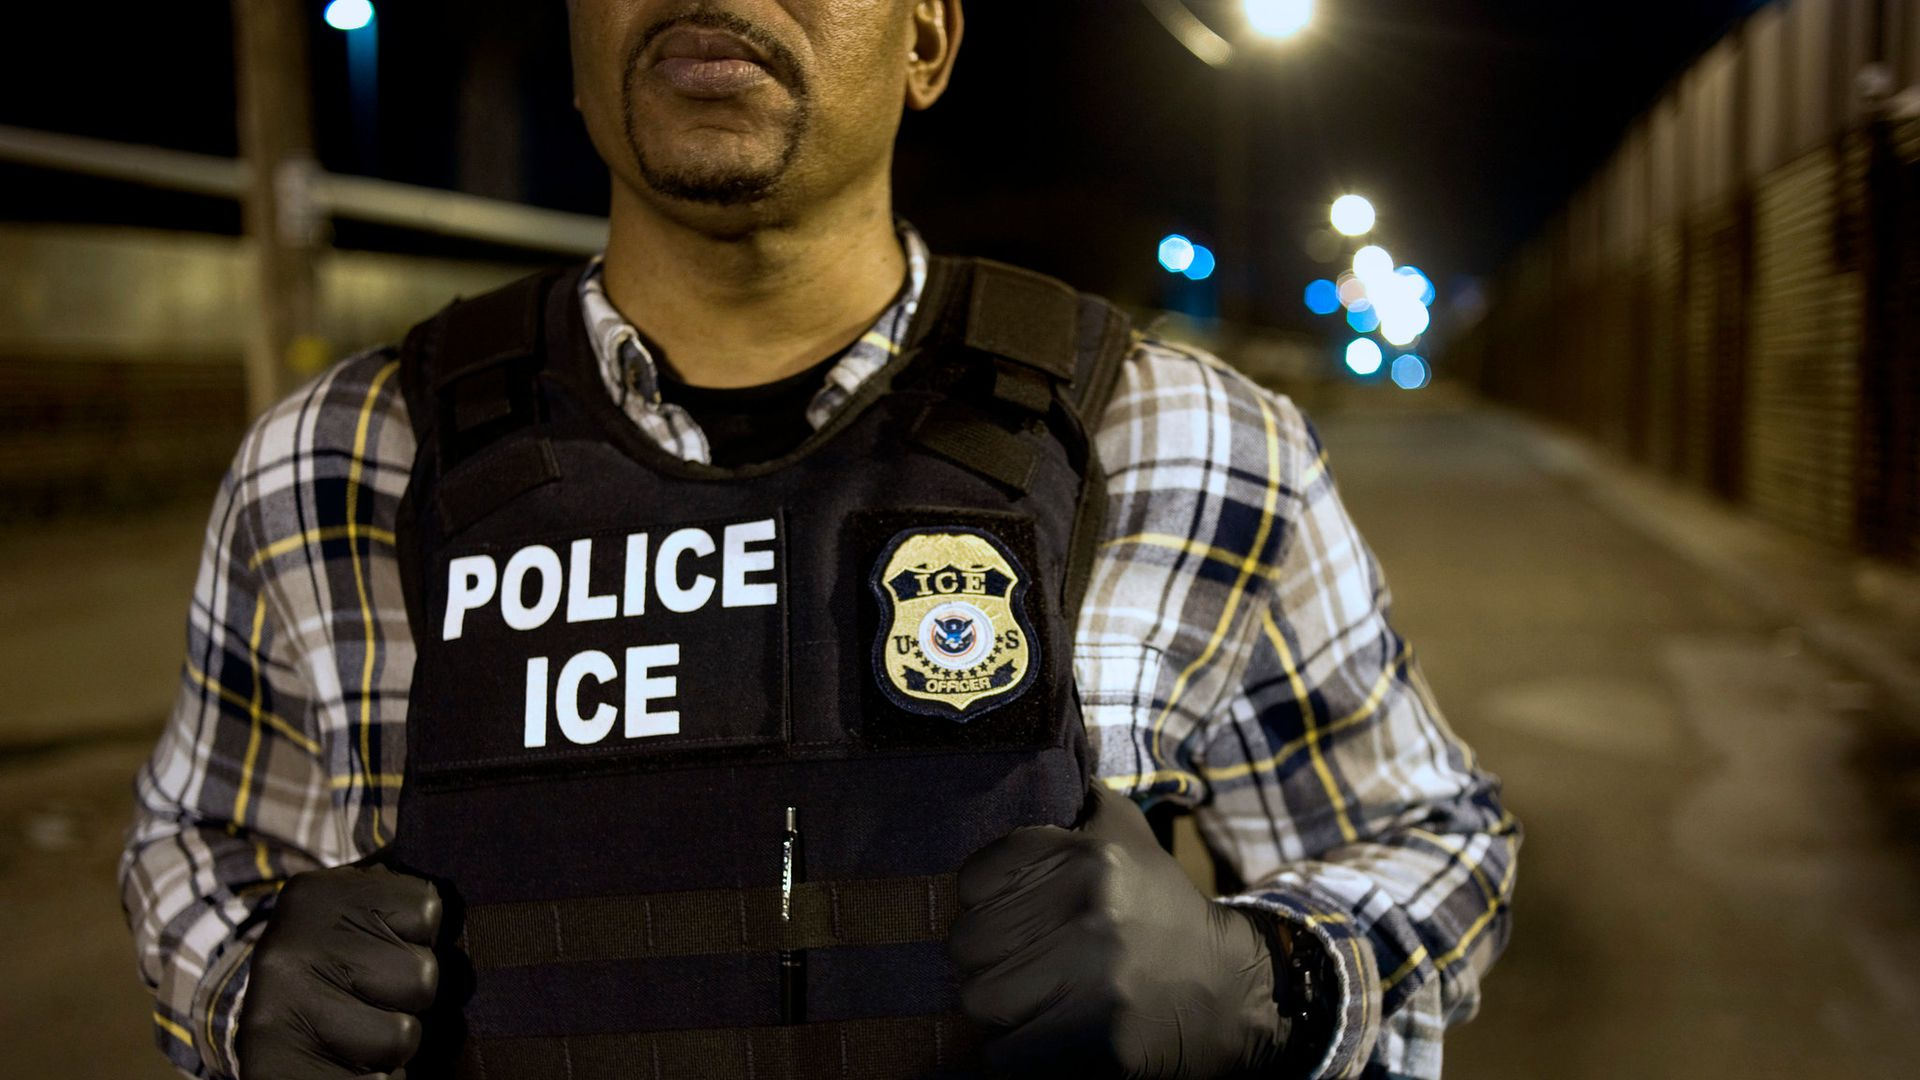 In this image, an ICE officer holds onto his vest as he stands in the street at night.